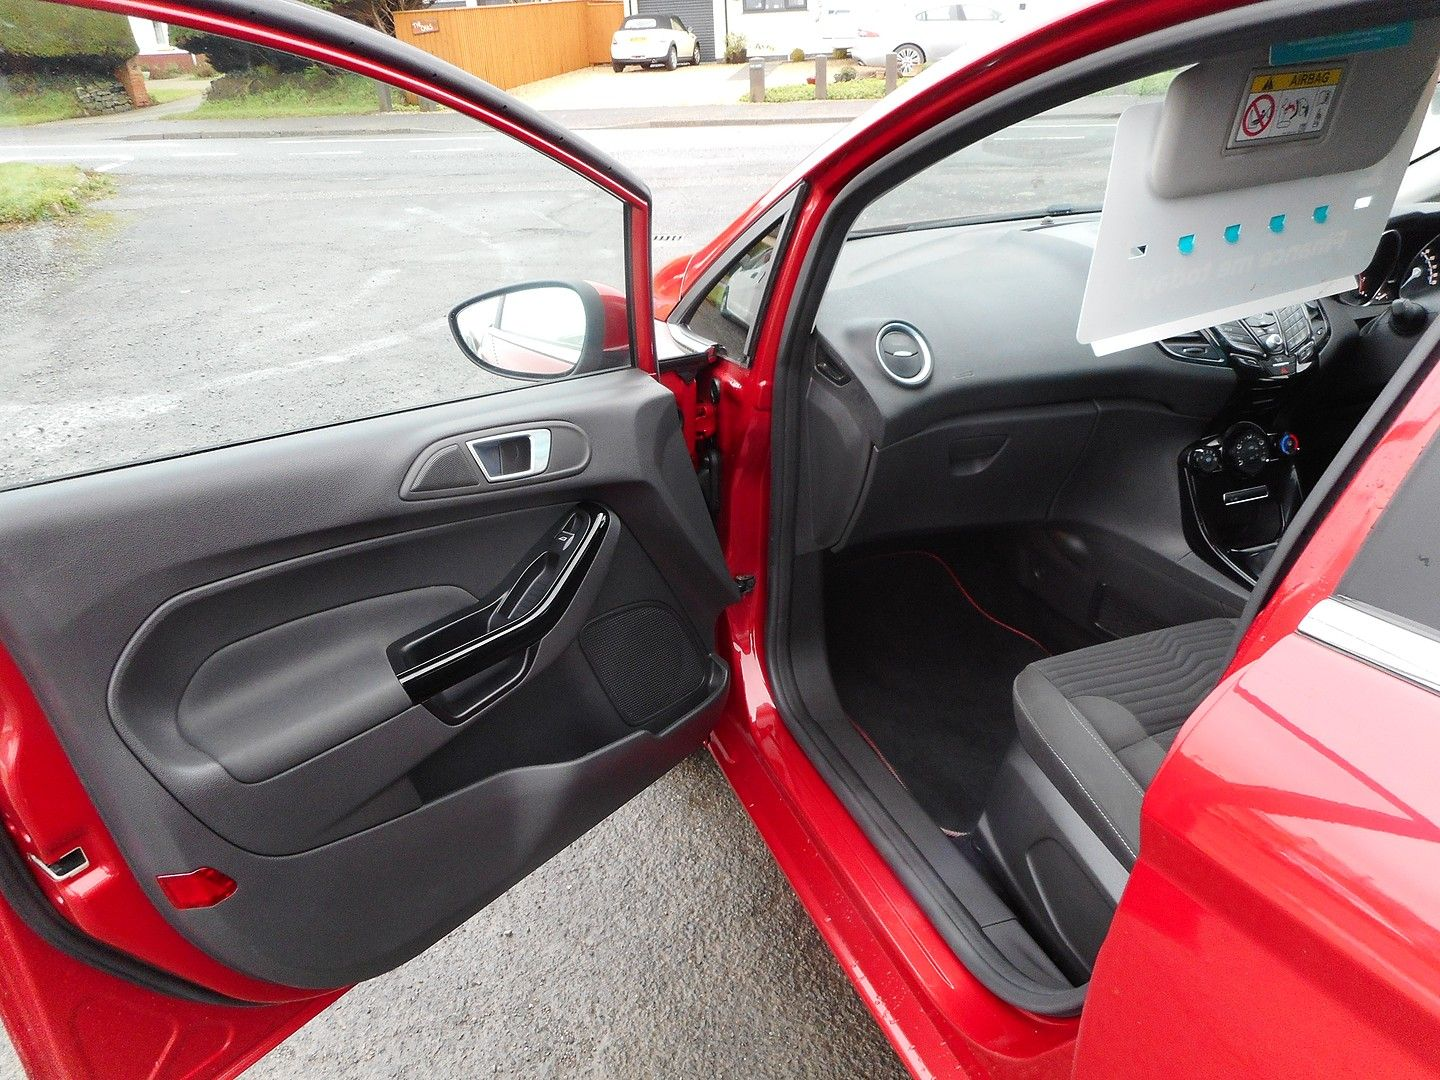 FORD Fiesta Zetec 1.0 80PS Start/Stop (2015) - Picture 6